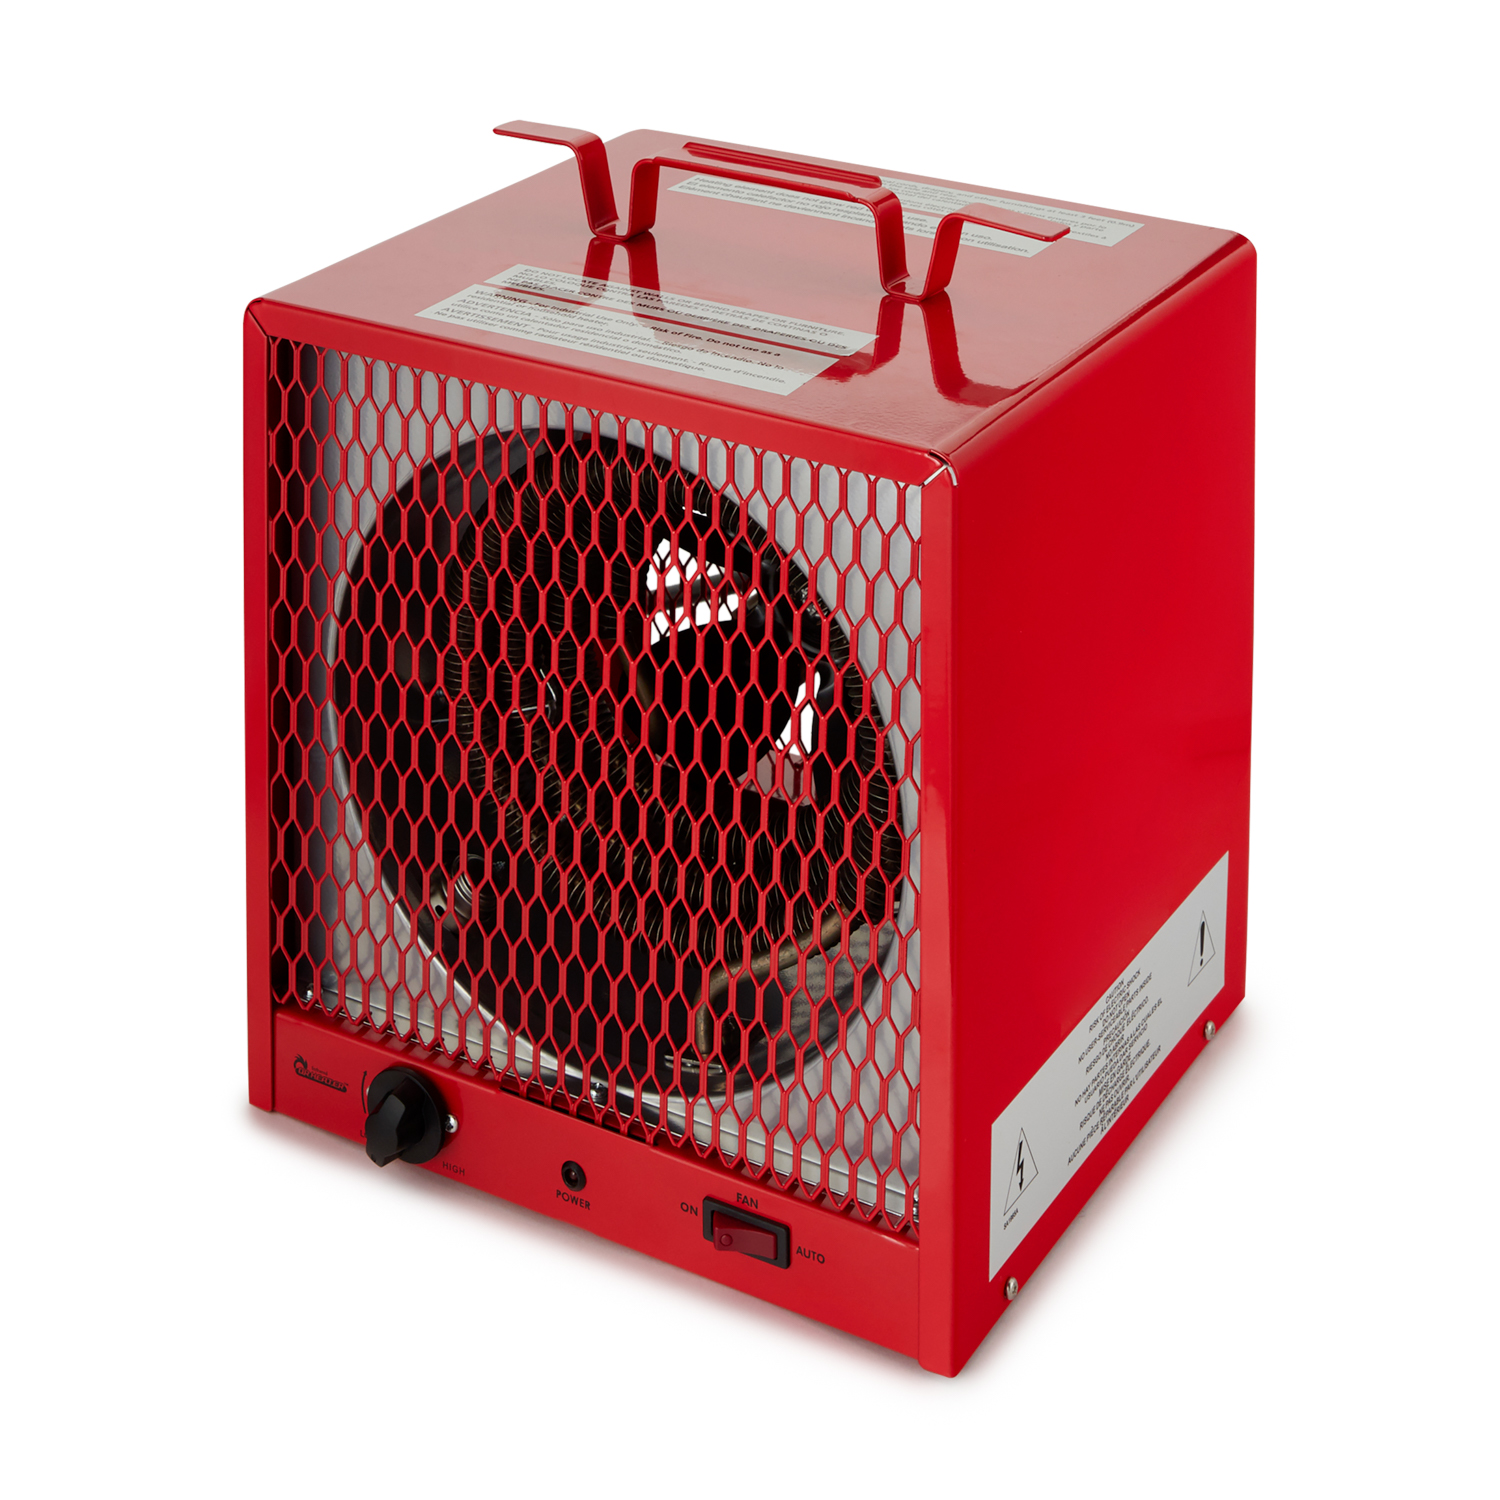 Dr. Infrared Heater 240 Volt 5600 Watt Garage Portable ...